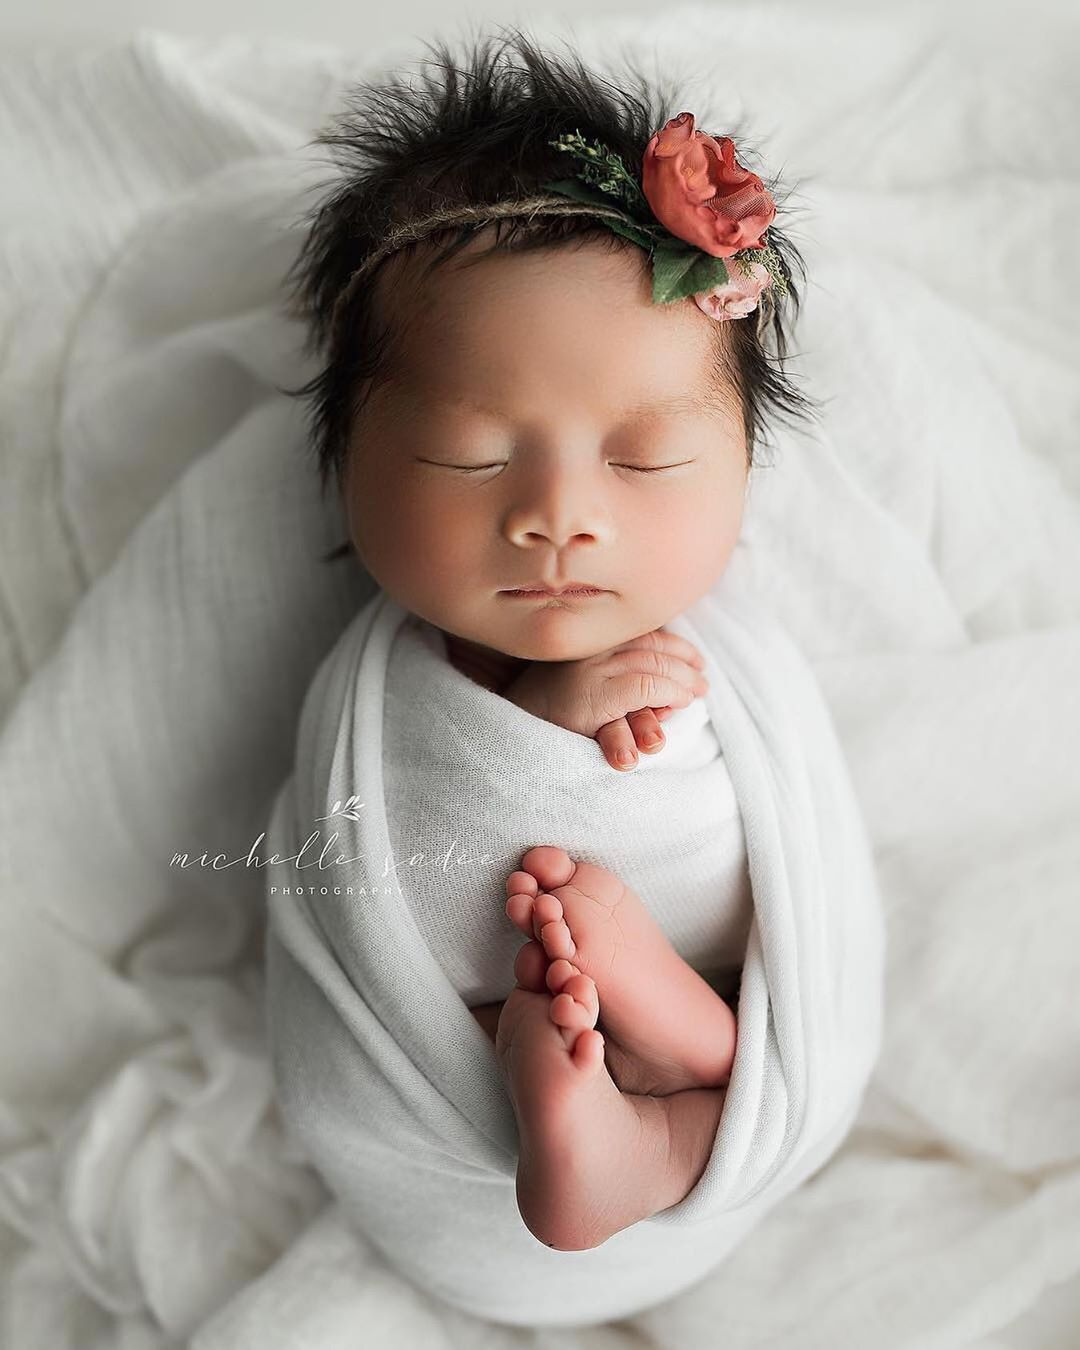 photography baby by michelle sadee